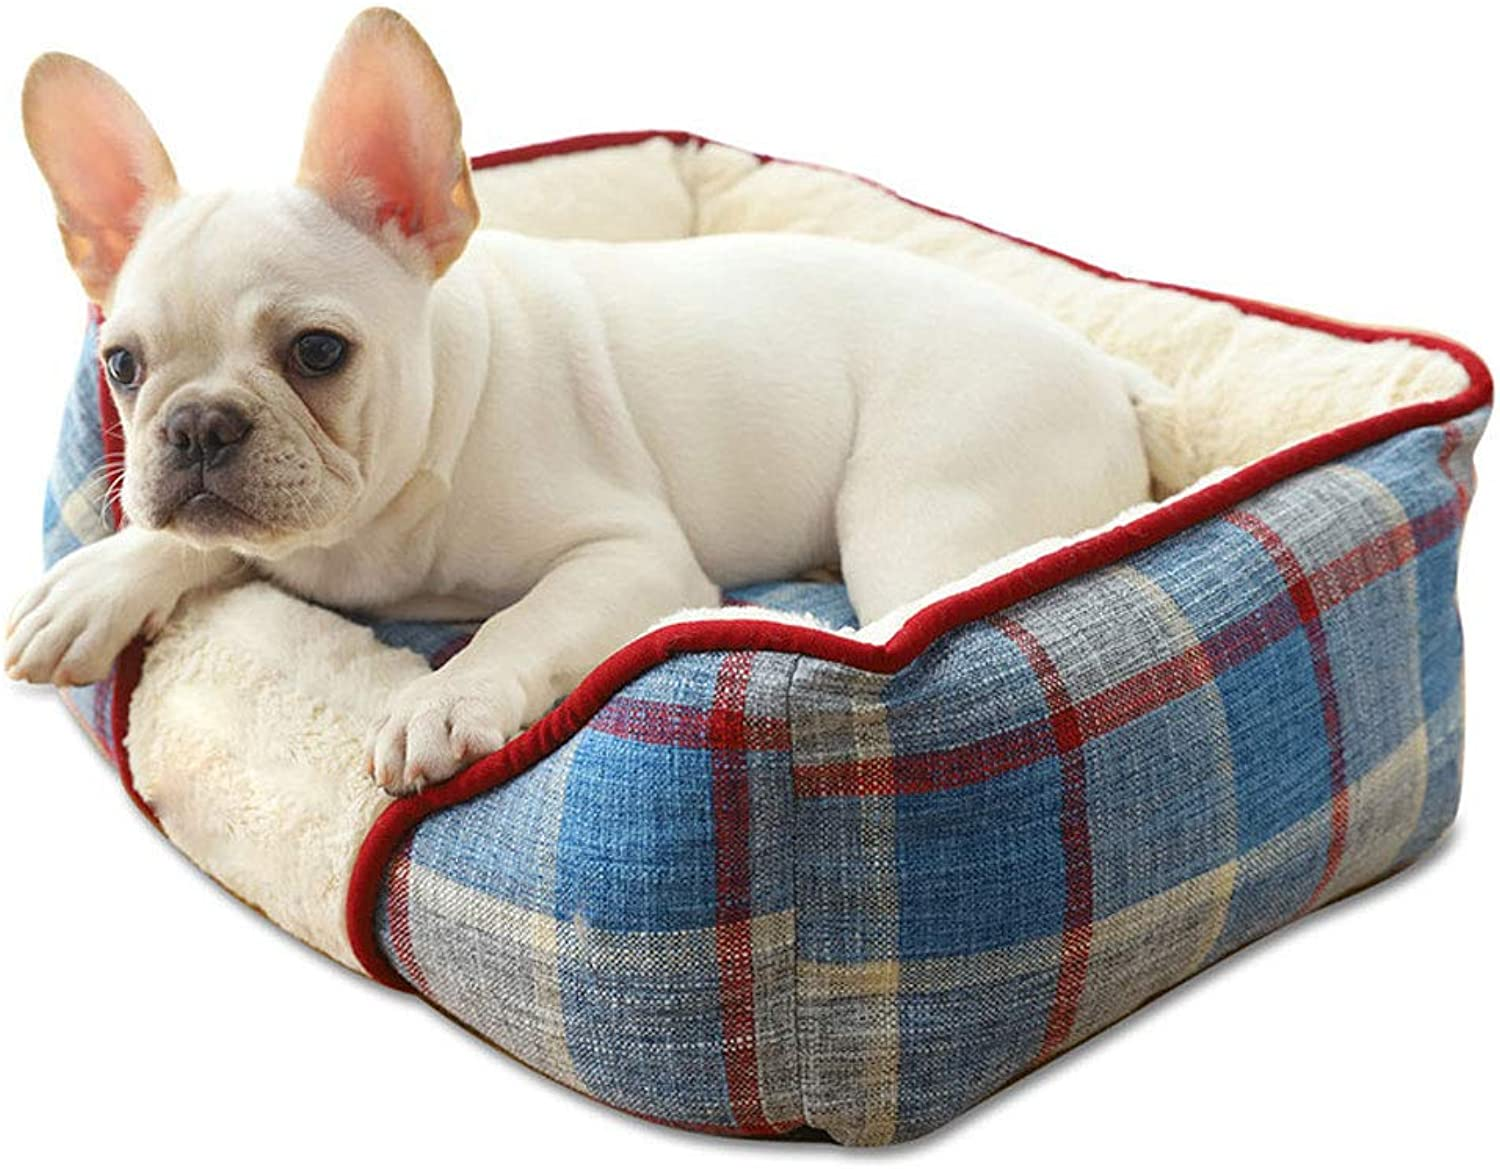 GCHOME dog bed Pet Bed, Plaid Linen Kennel Autumn and Winter Soft Warm and Comfortable Nonslip Waterproof and Durable Removable and Washable (Size   M)